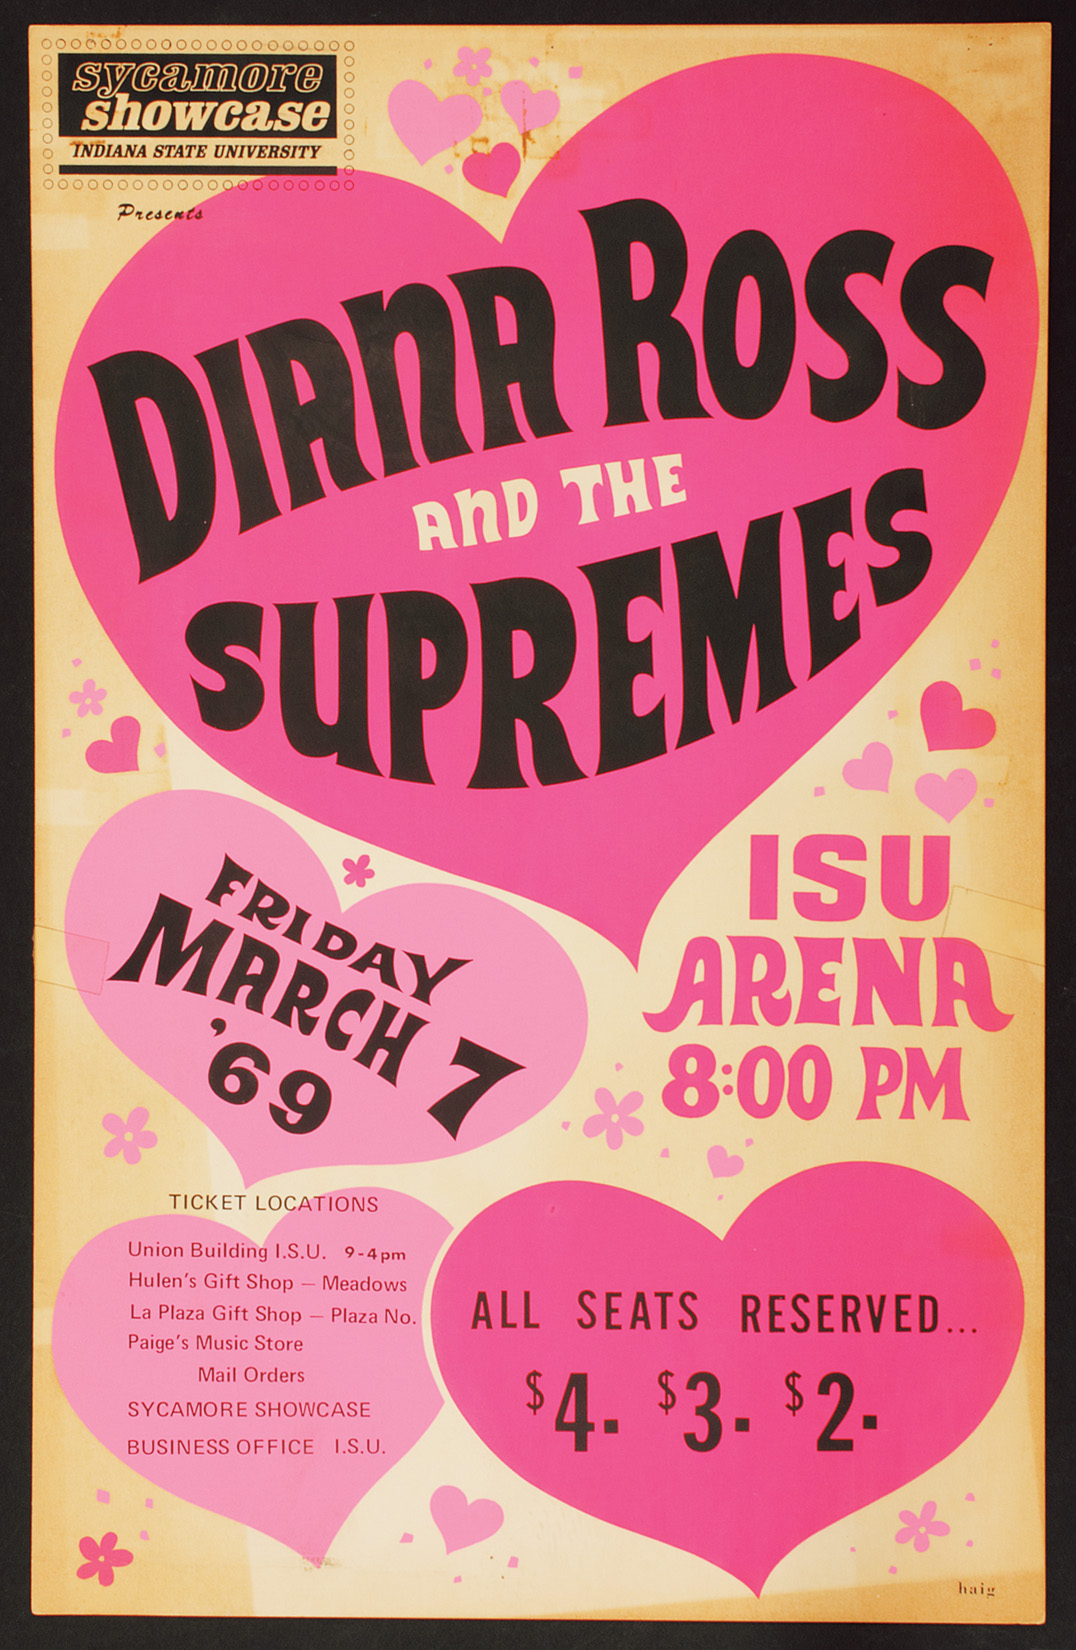 Diana Ross and The Supremes Concert Poster